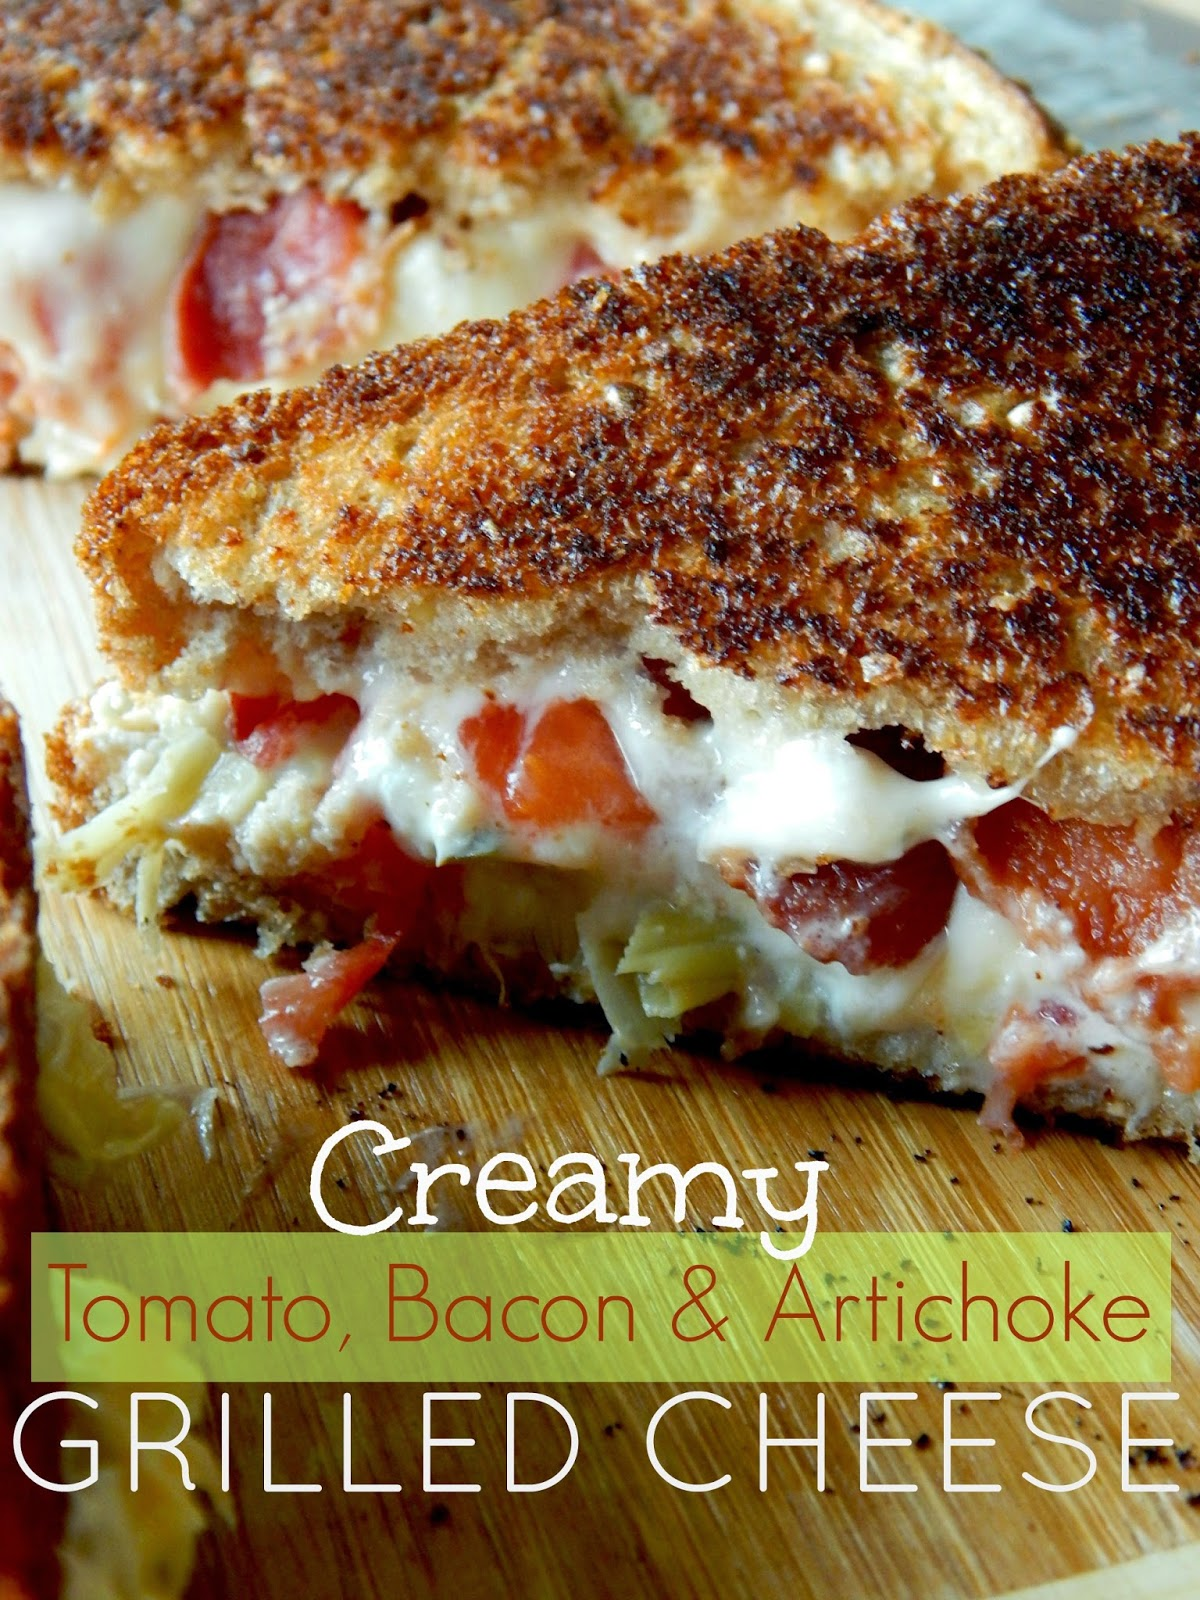 Creamy Tomato, Bacon and Artichoke Grilled Cheese Sandwiches from Ally's Sweet and Savory Eats